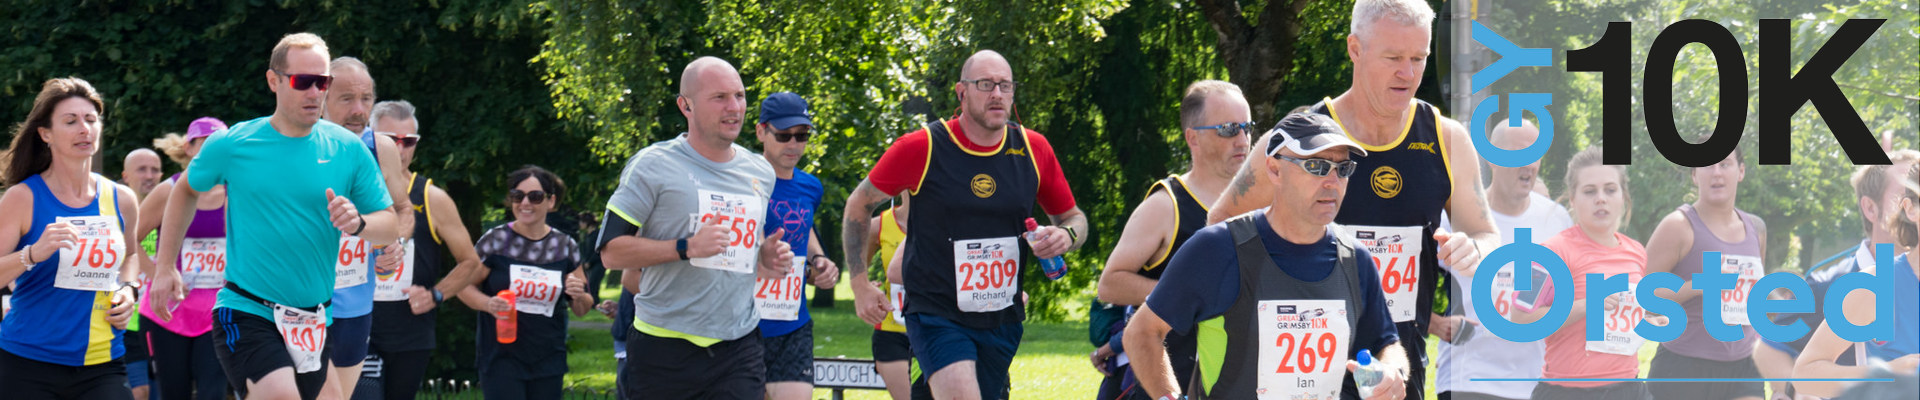 Ørsted Great Grimsby 10k 2018